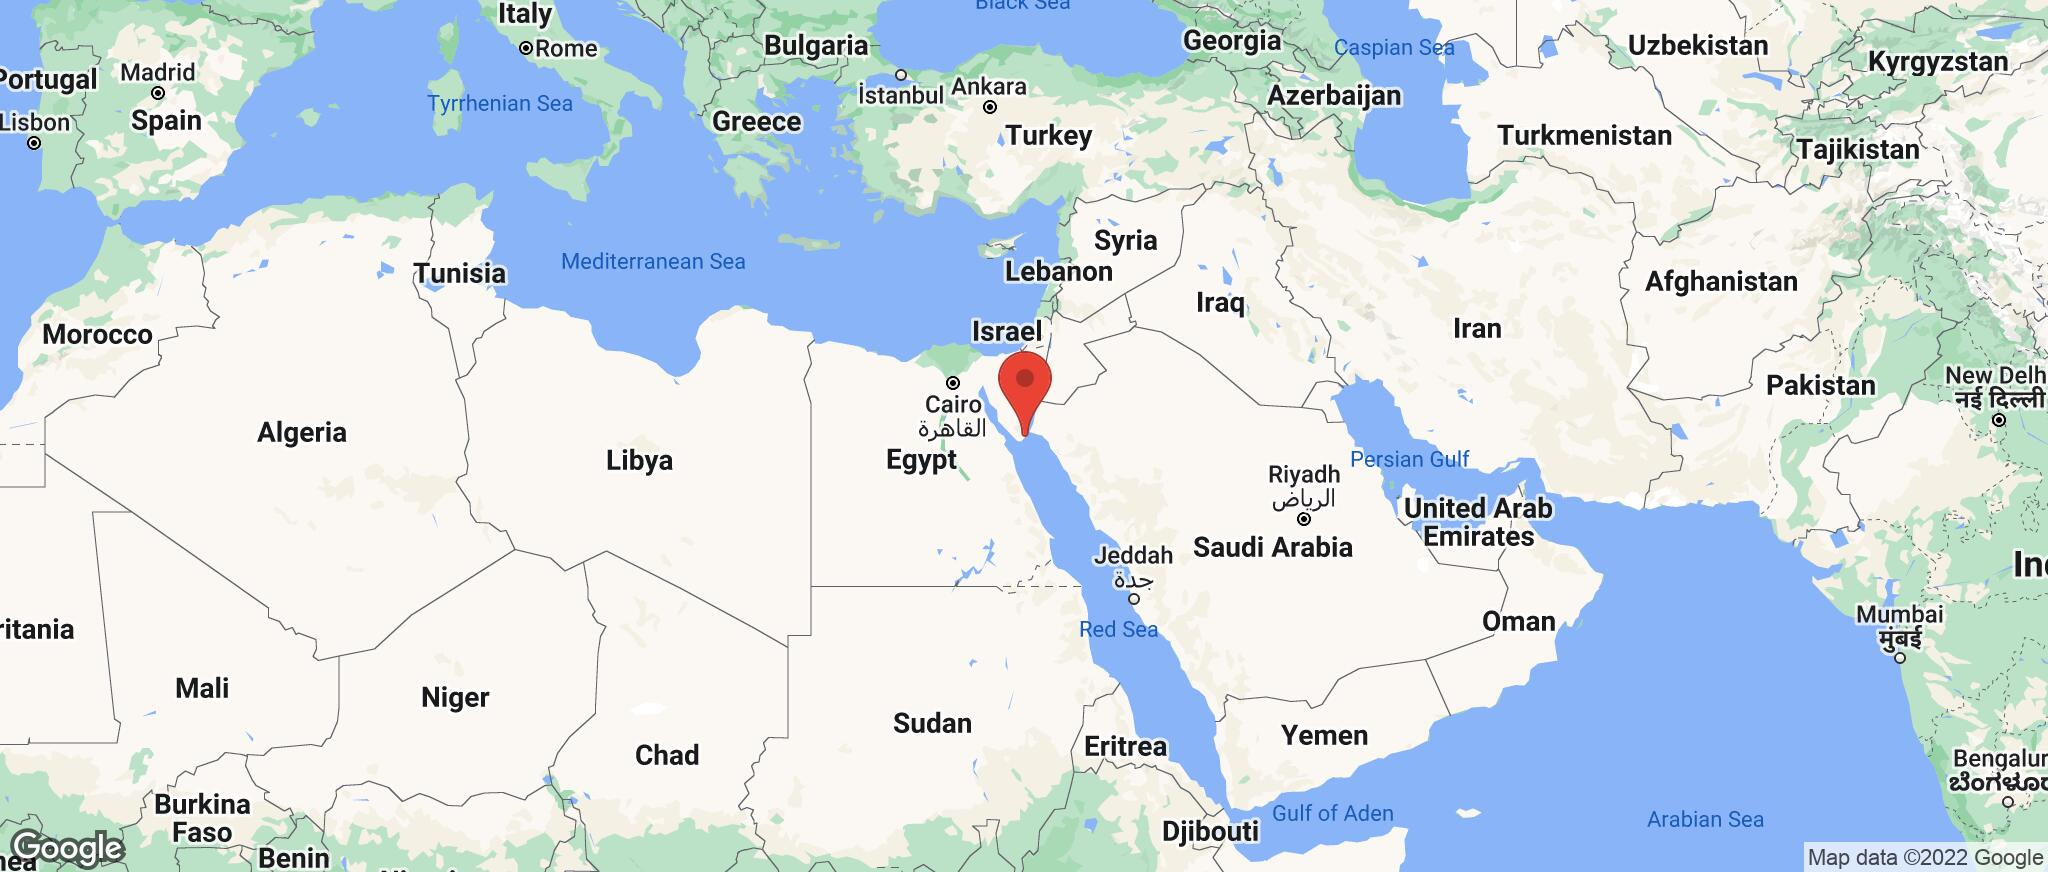 Map showing the location of Sharm El Sheikh